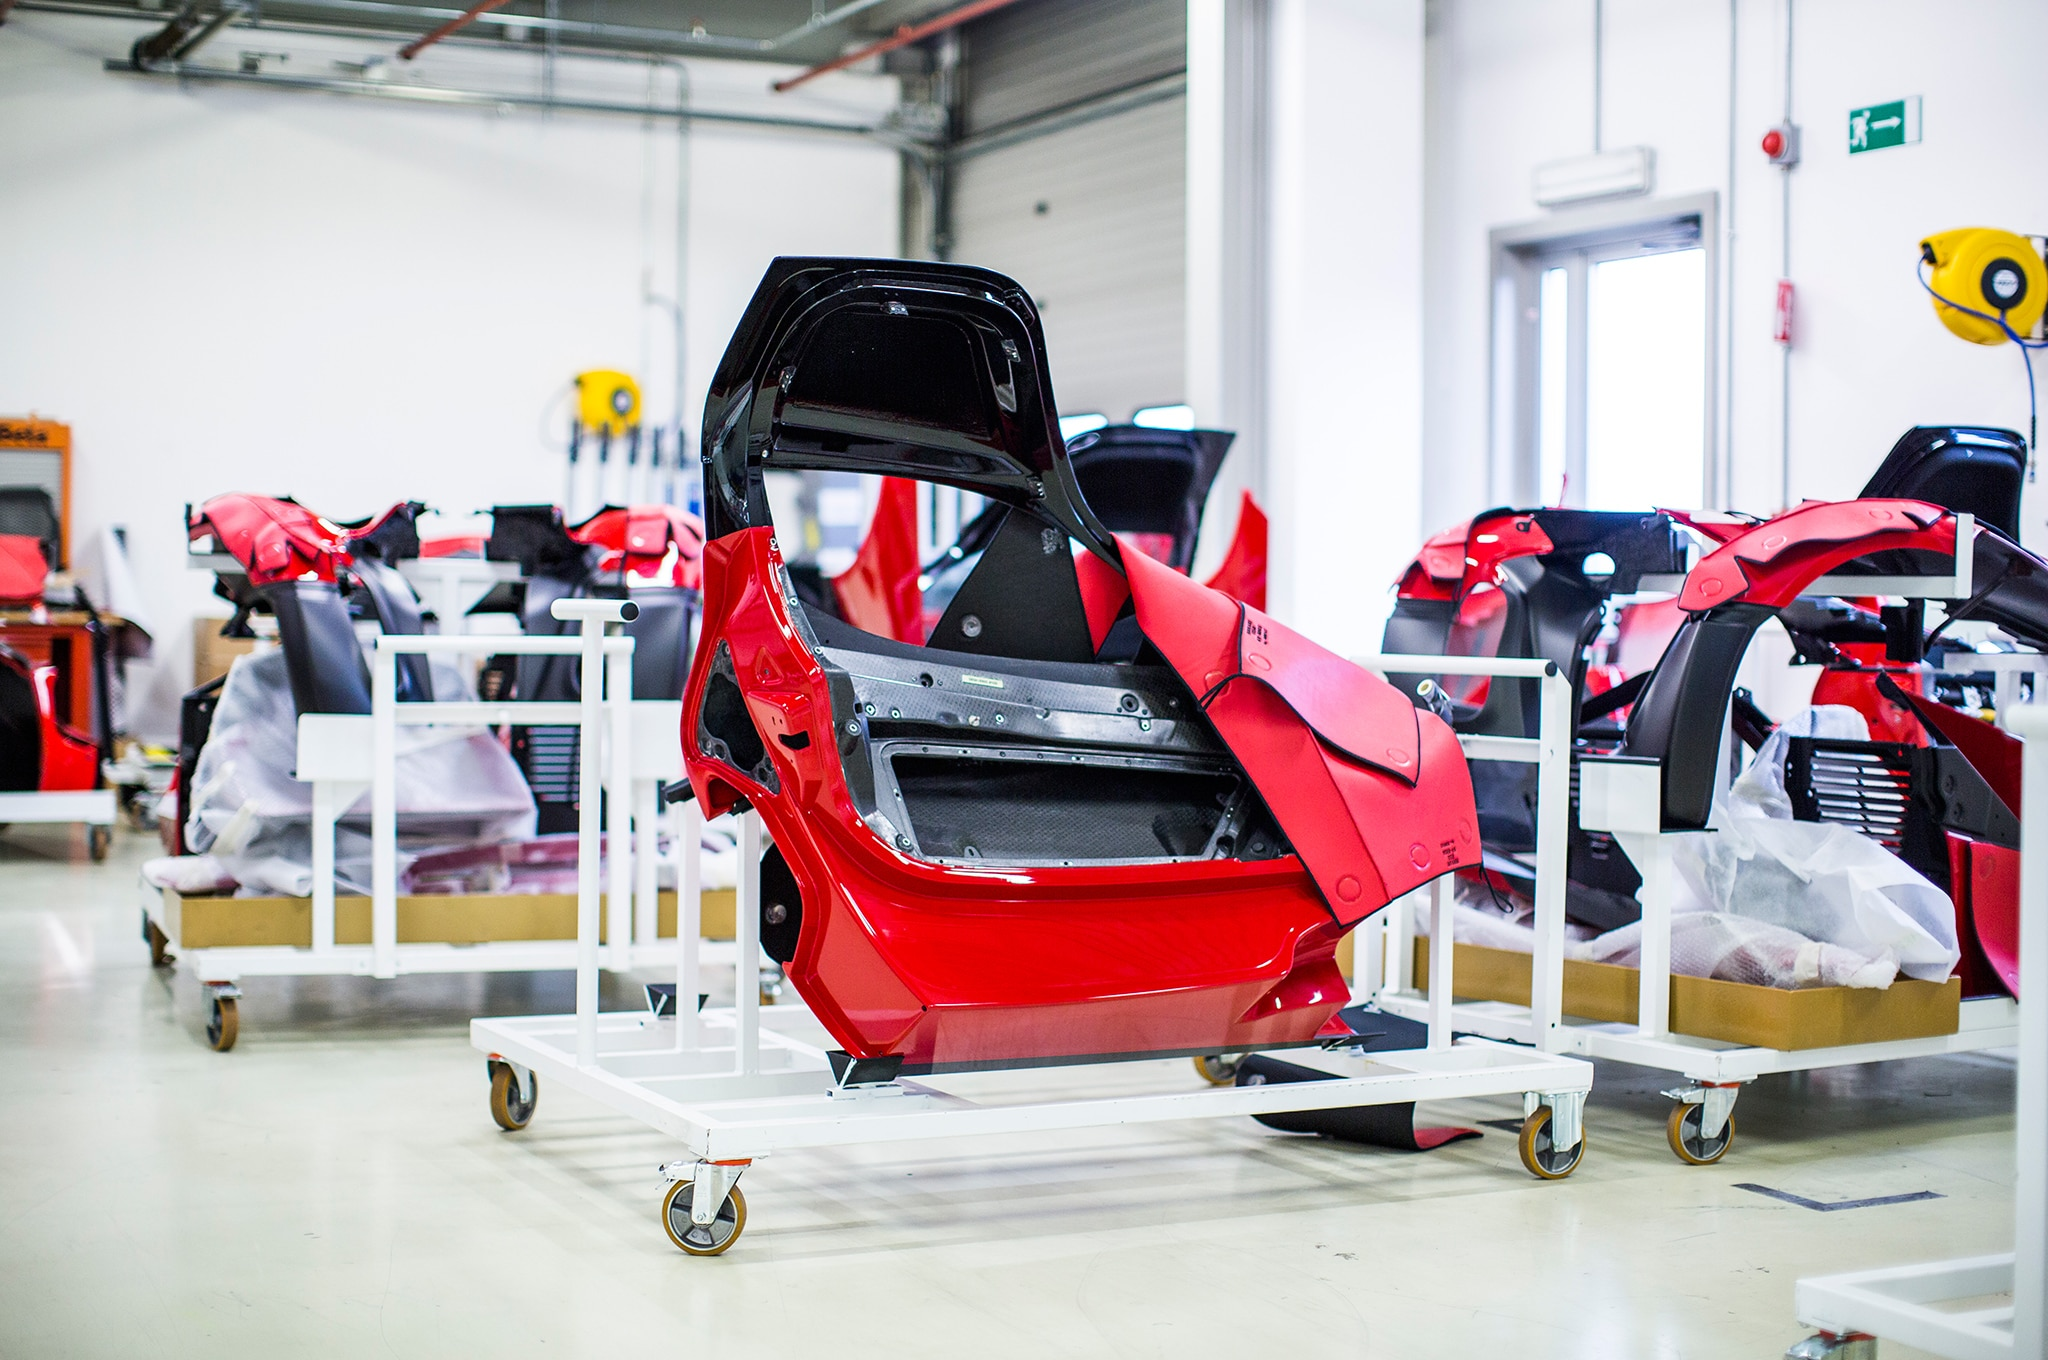 In a side room, various LaFerrari body pieces wait to be attached to a chassis.